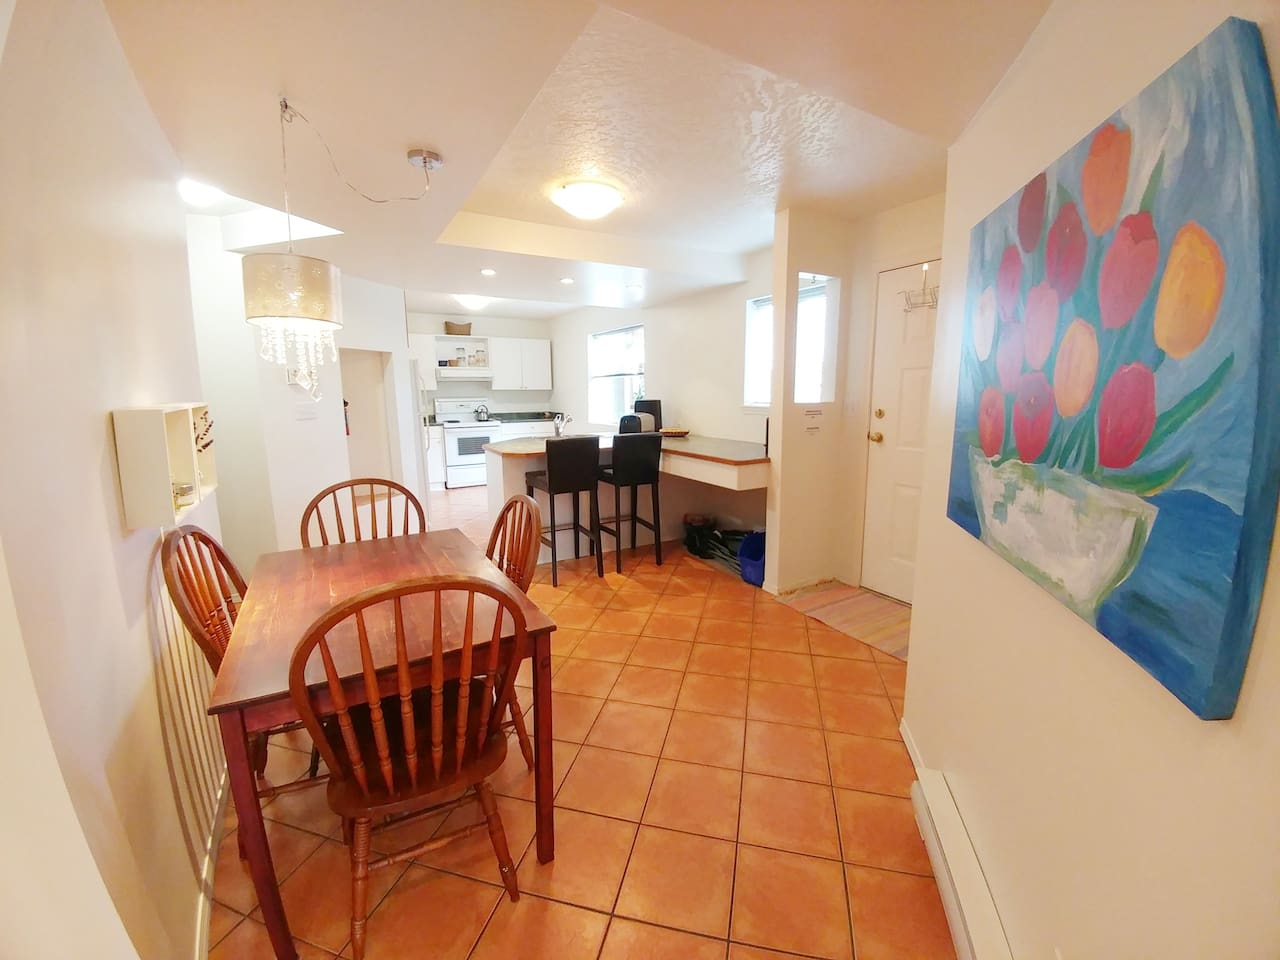 Newly renovated. Looking from the living space towards the dinning areas bright main entrance and spacious kitchen.